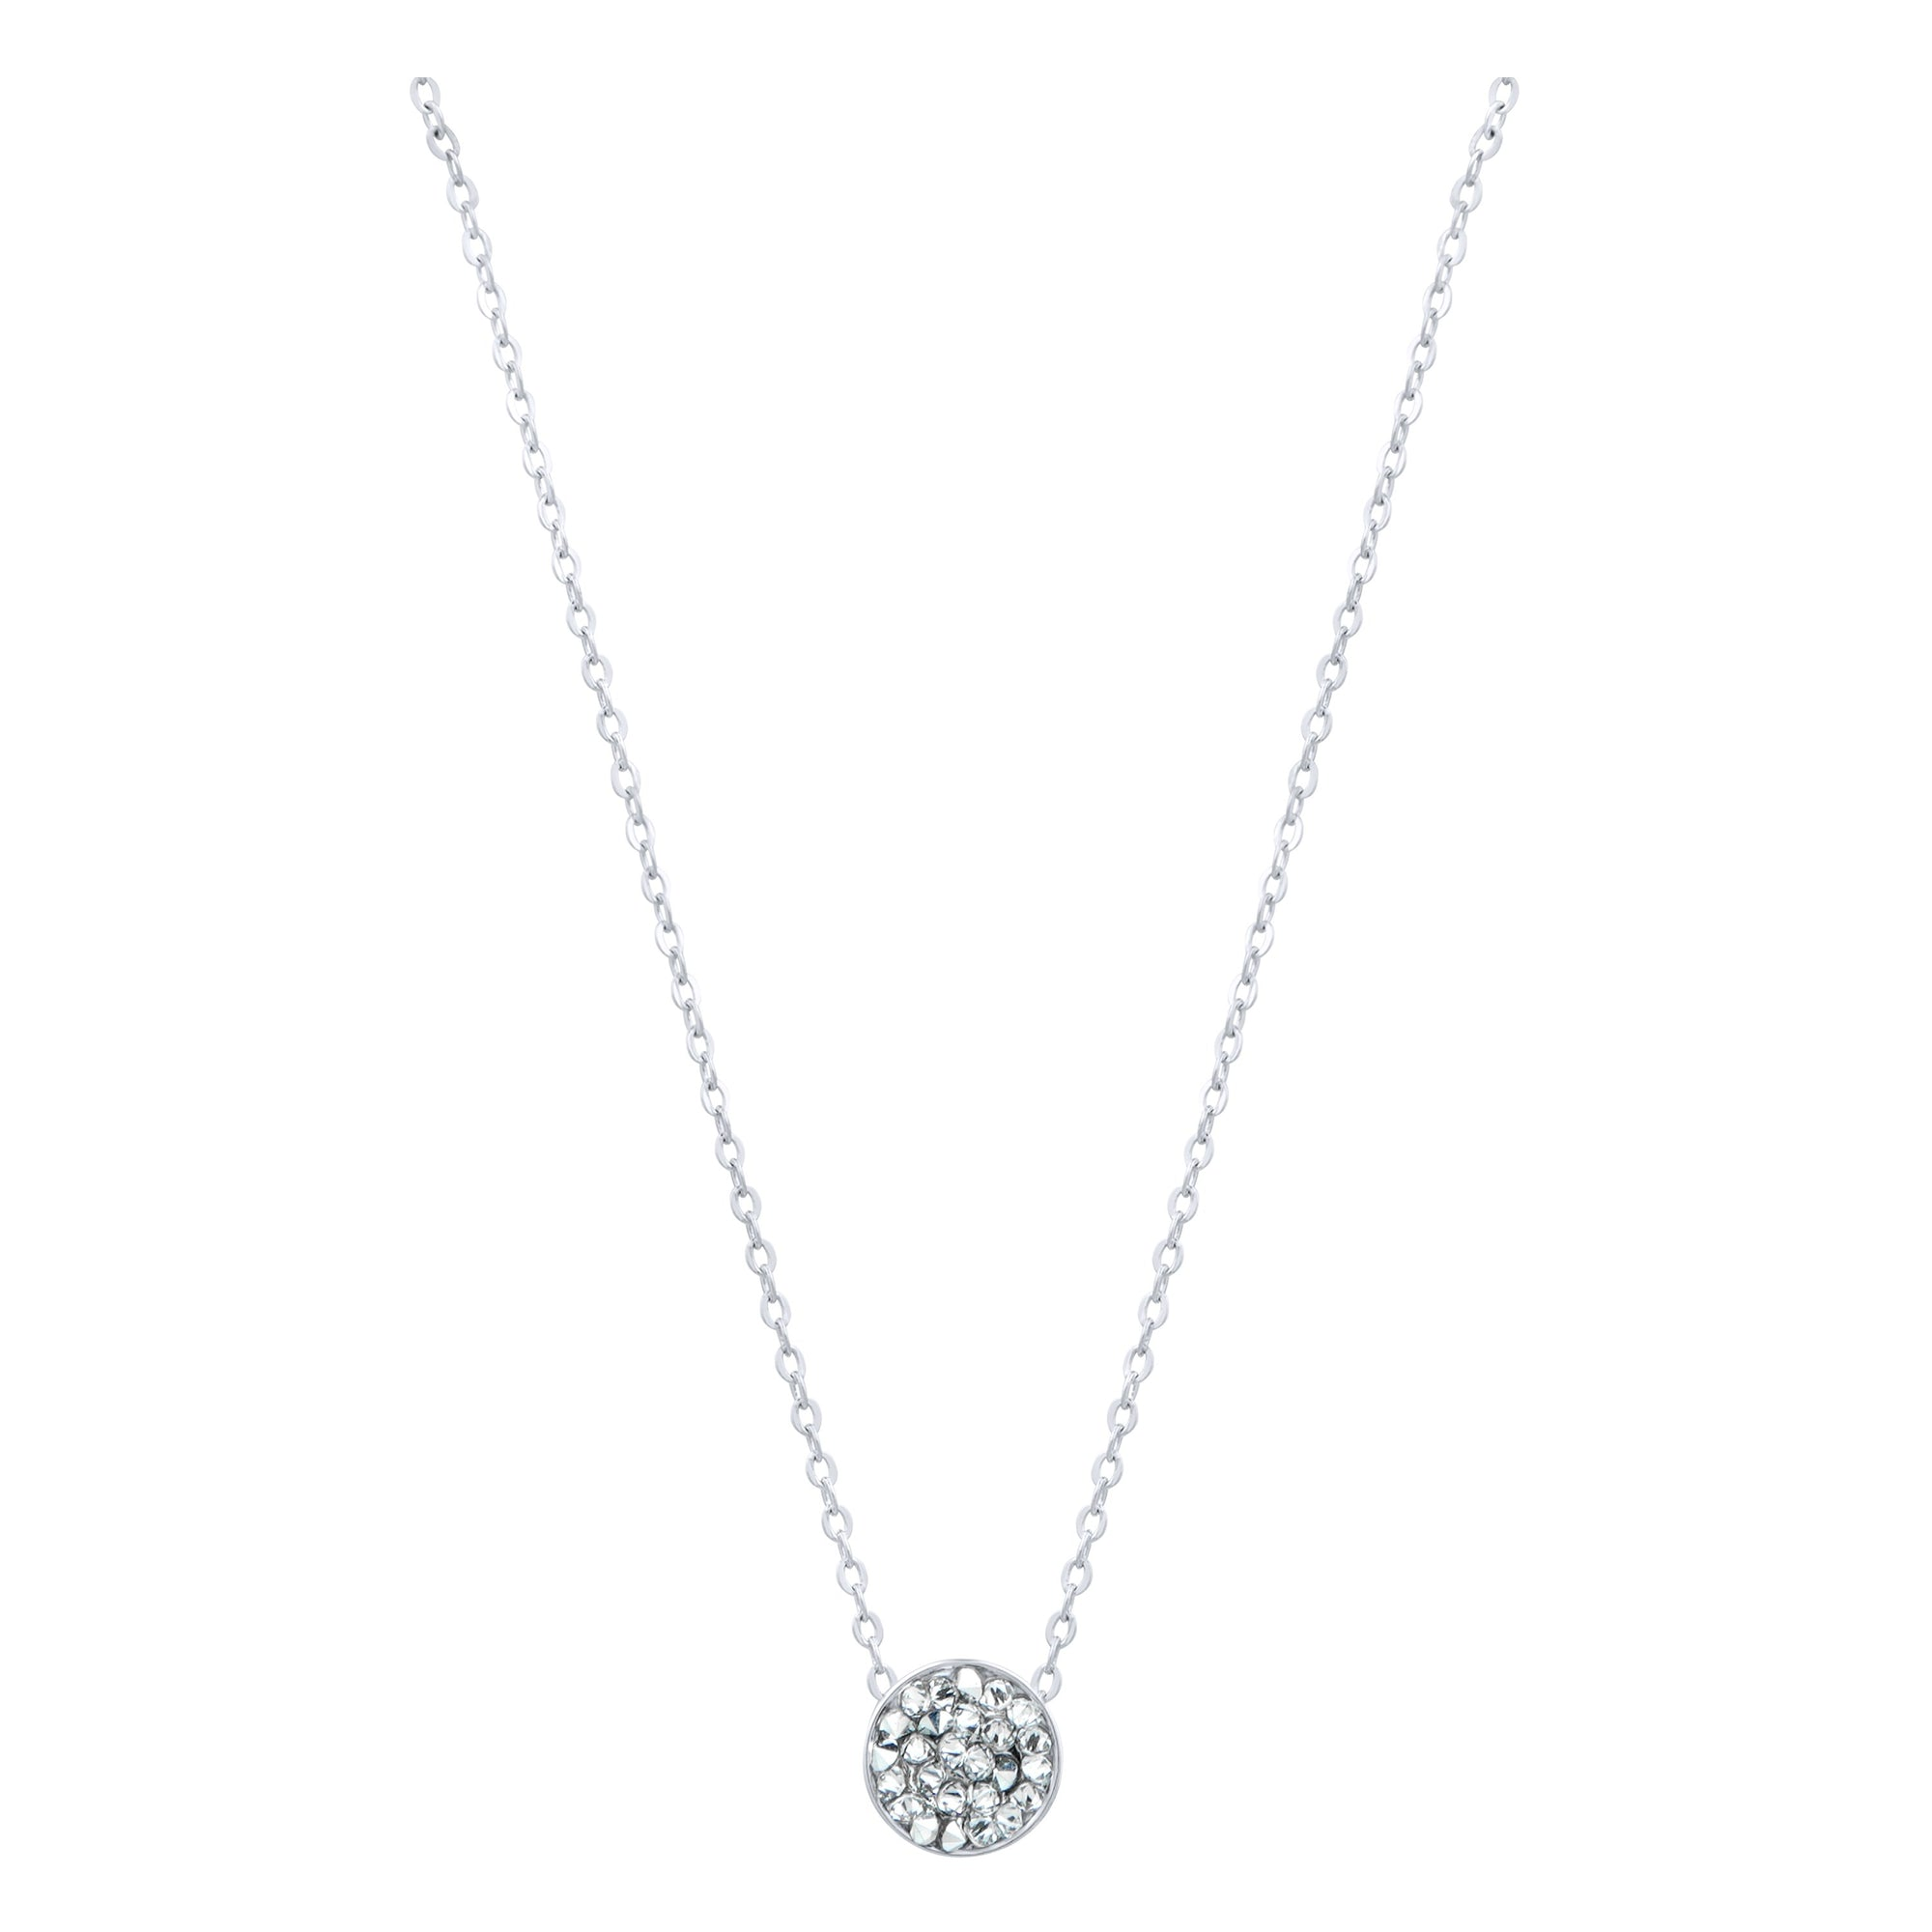 DORADO PETITE SLIDER NECKLACE SILVER CAL